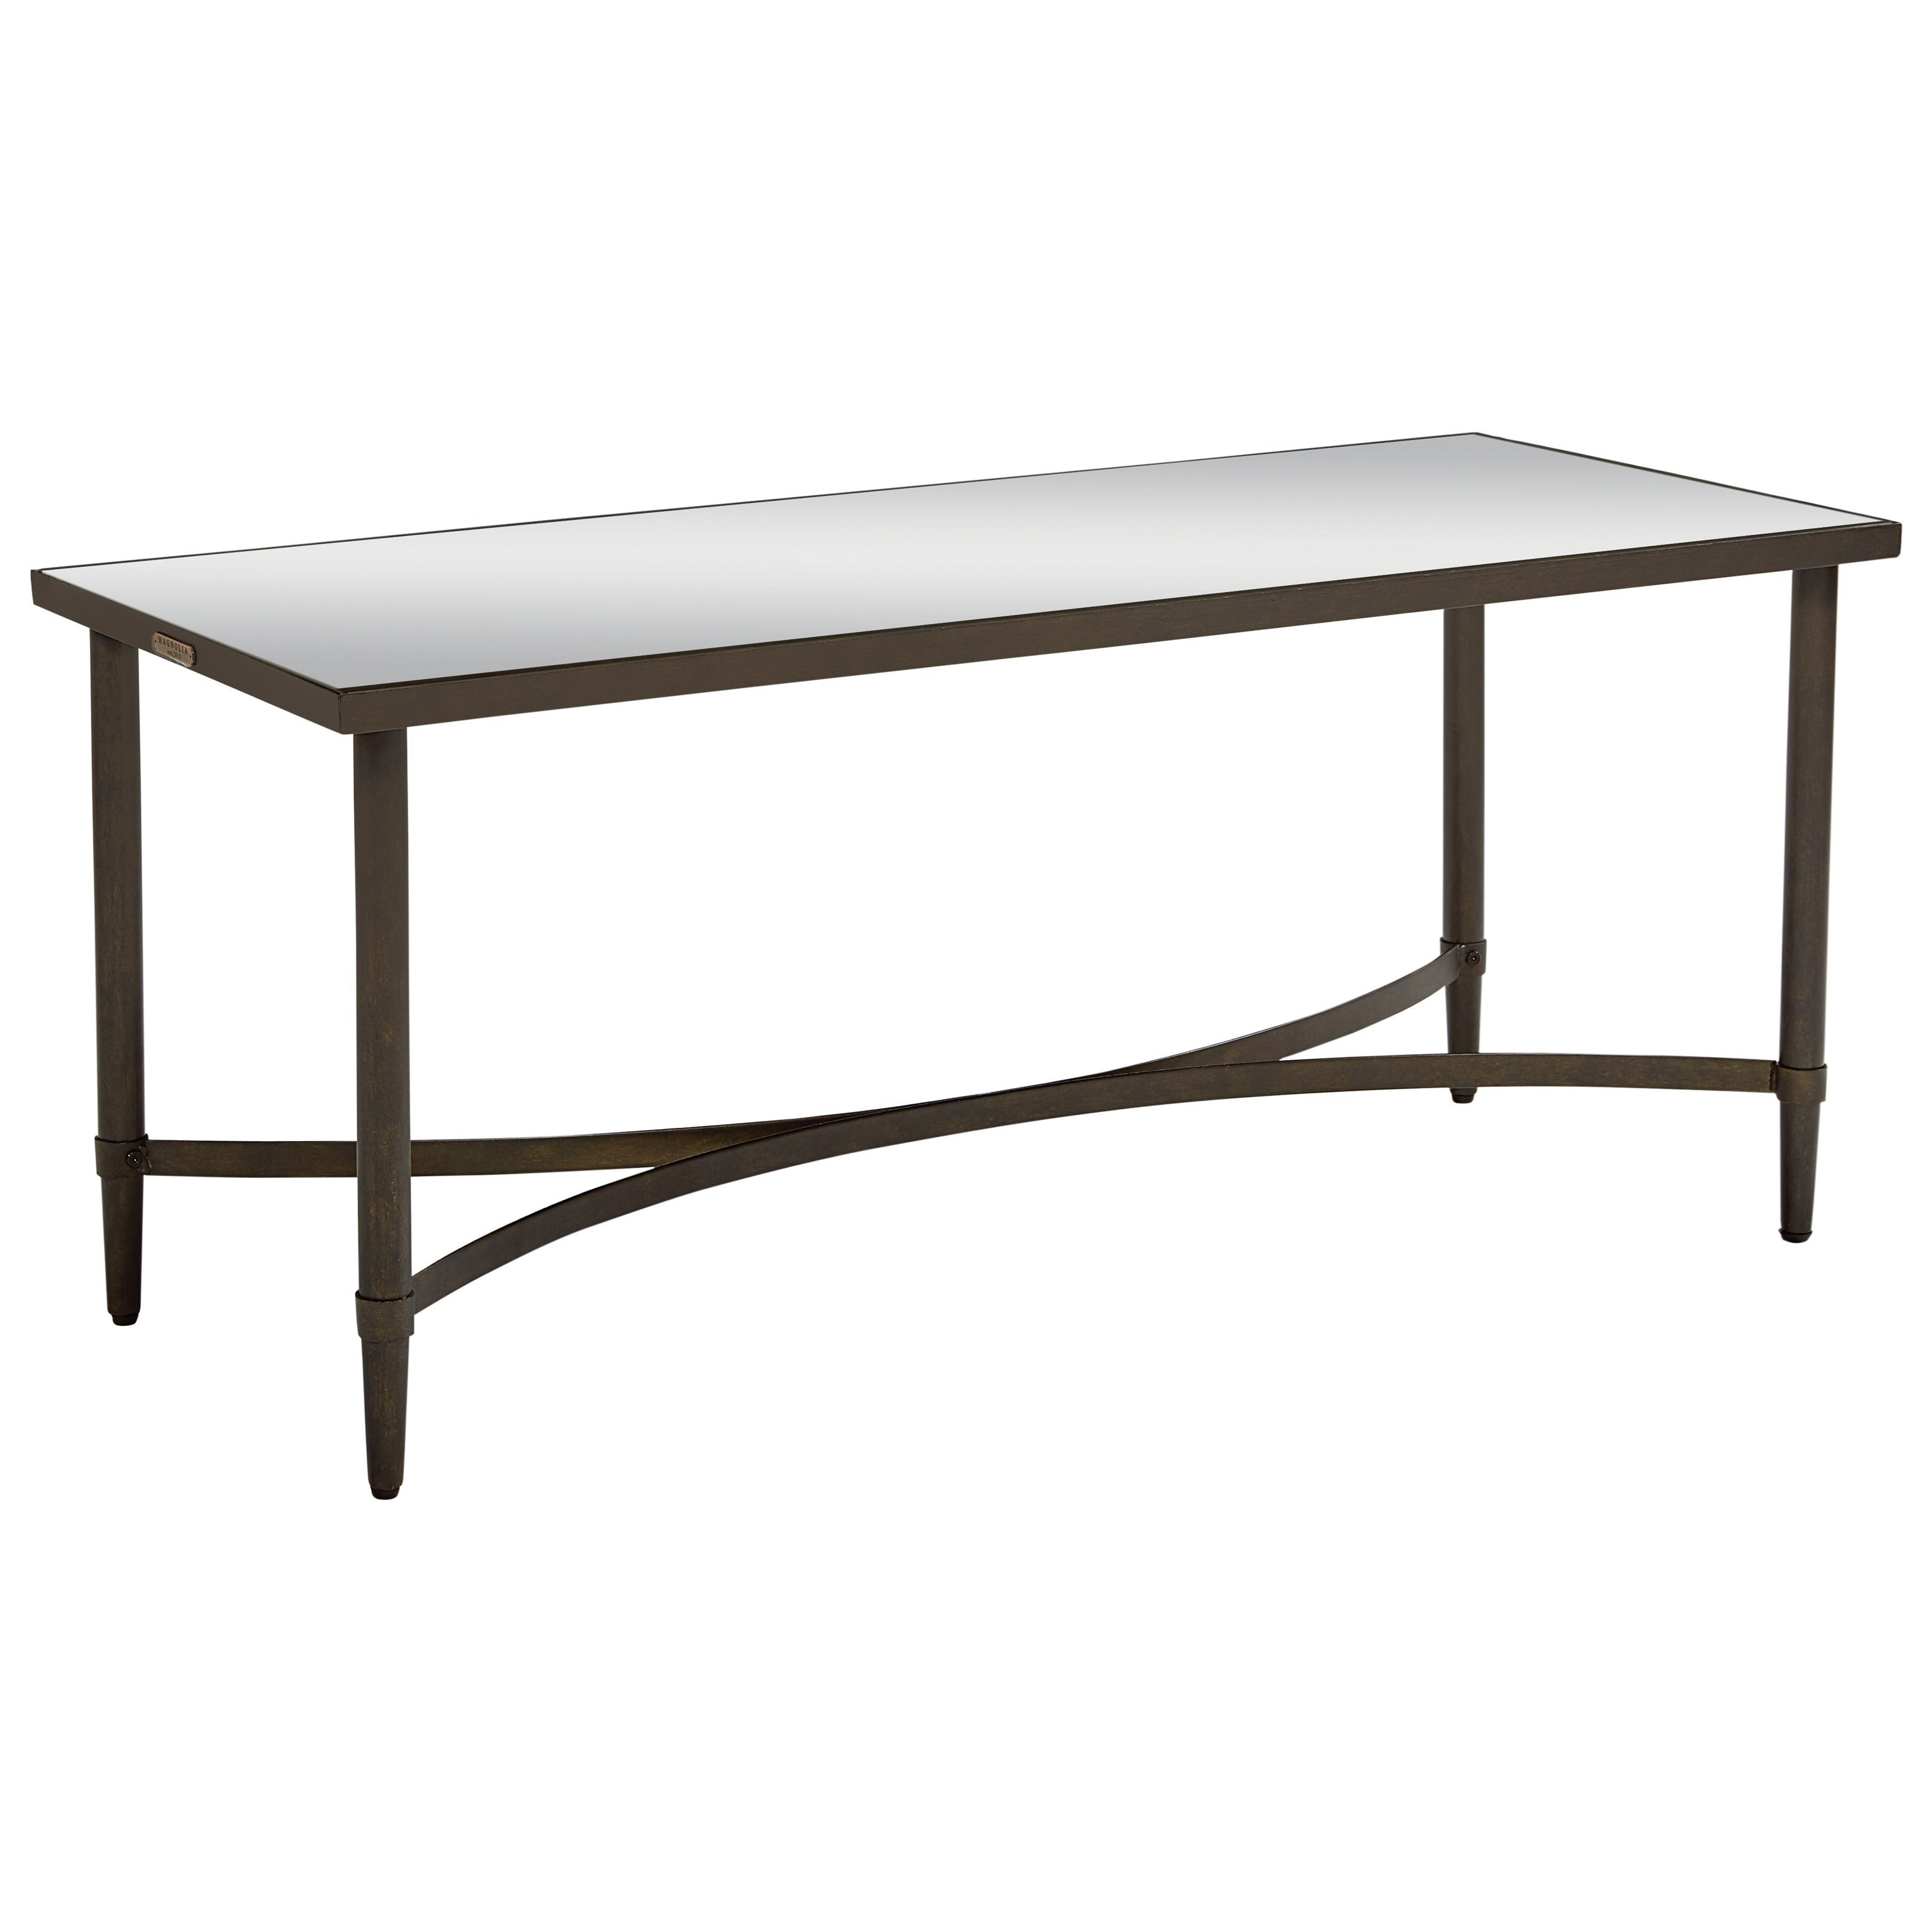 Magnolia Home By Joanna Gaines Accent Elements Coffee Table With Mirror Top    Great American Home Store   Cocktail/Coffee Tables